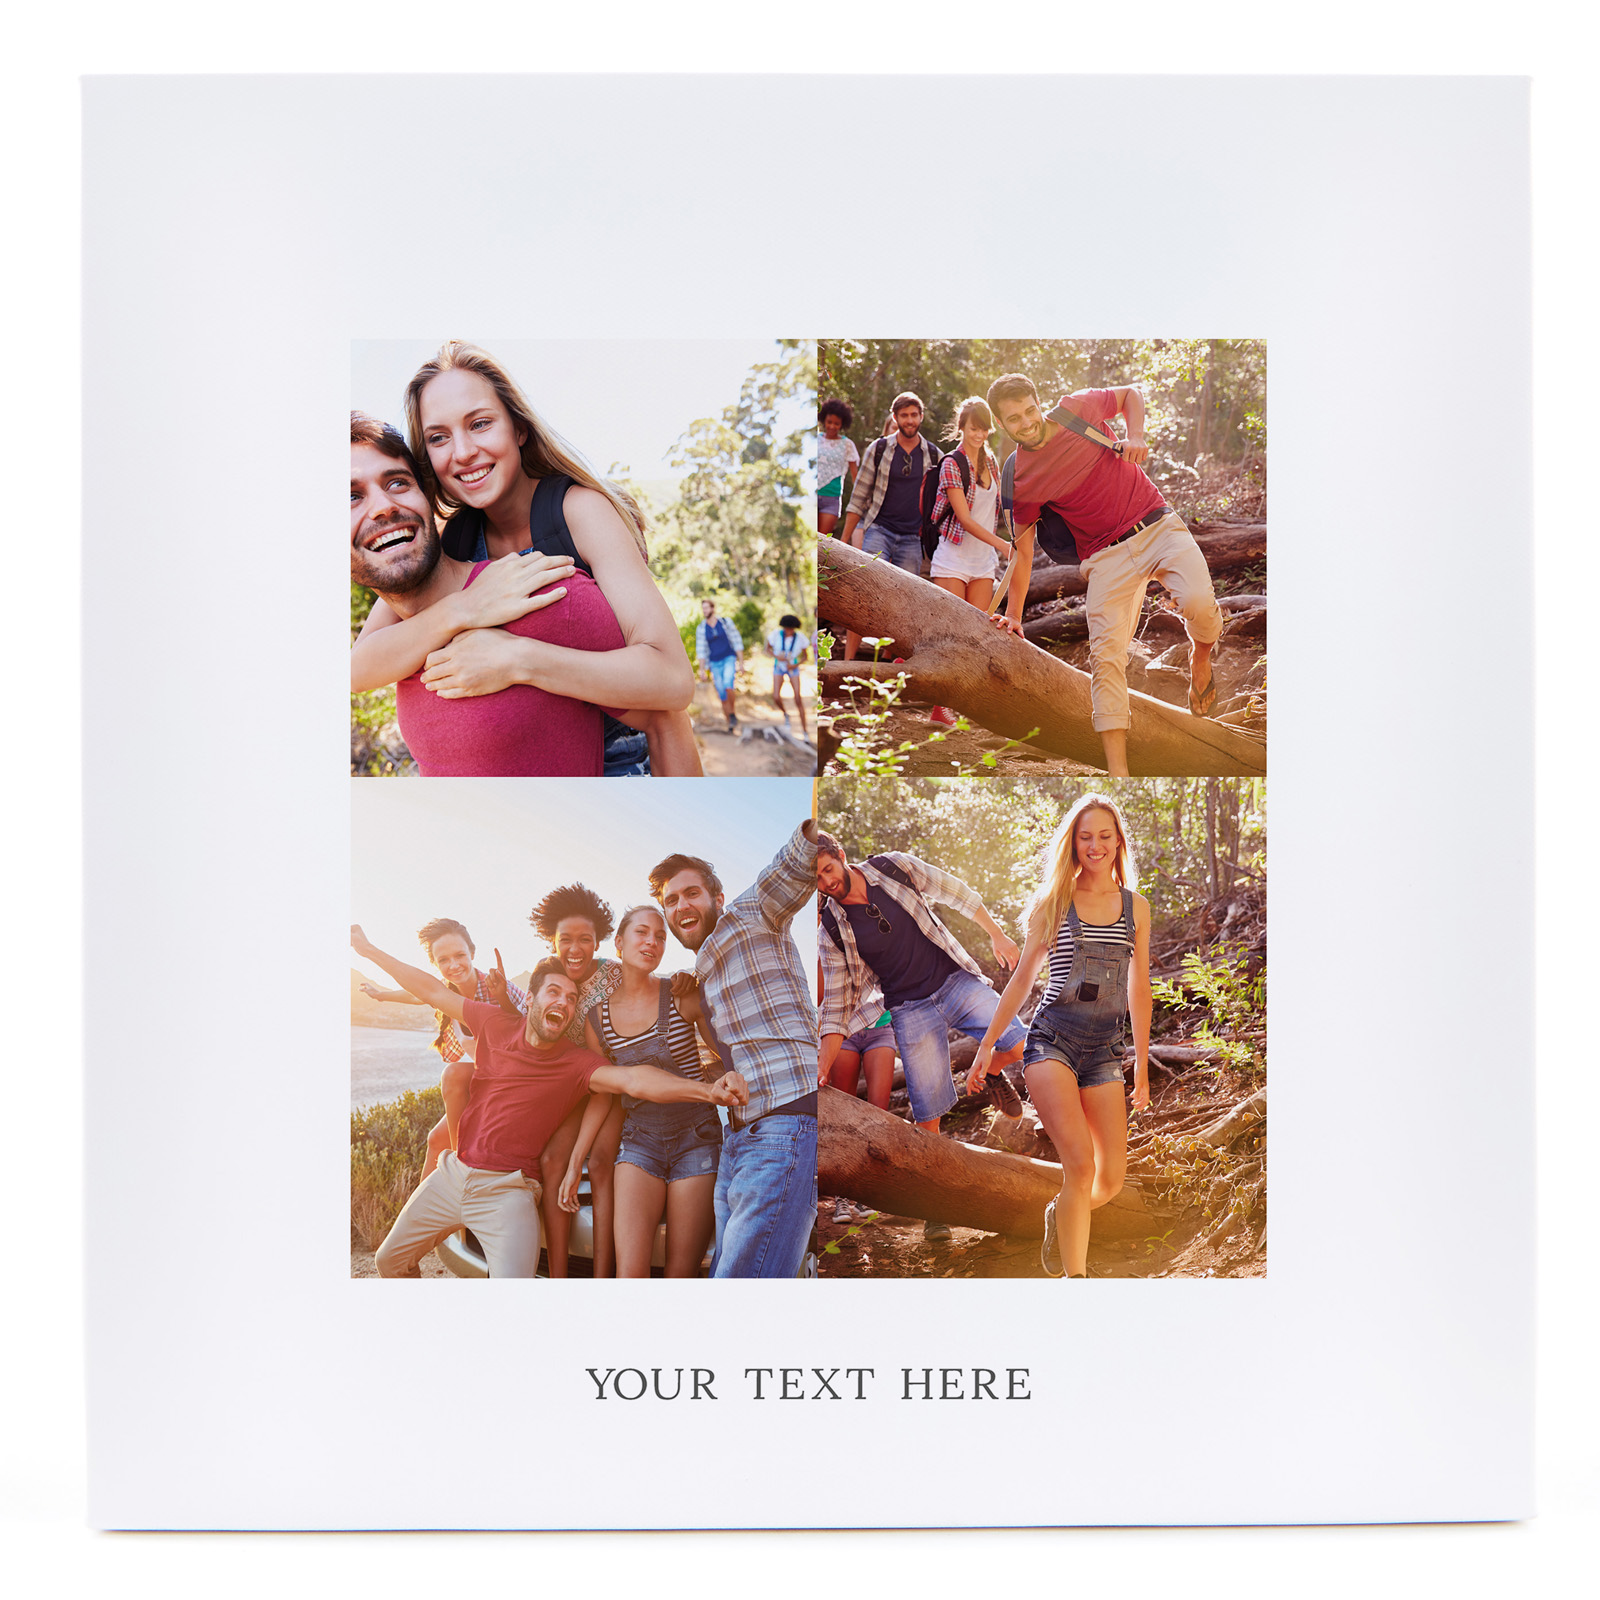 Personalised Canvas - 12x12 Inches (Square) - Multi Photo Upload, Any Message